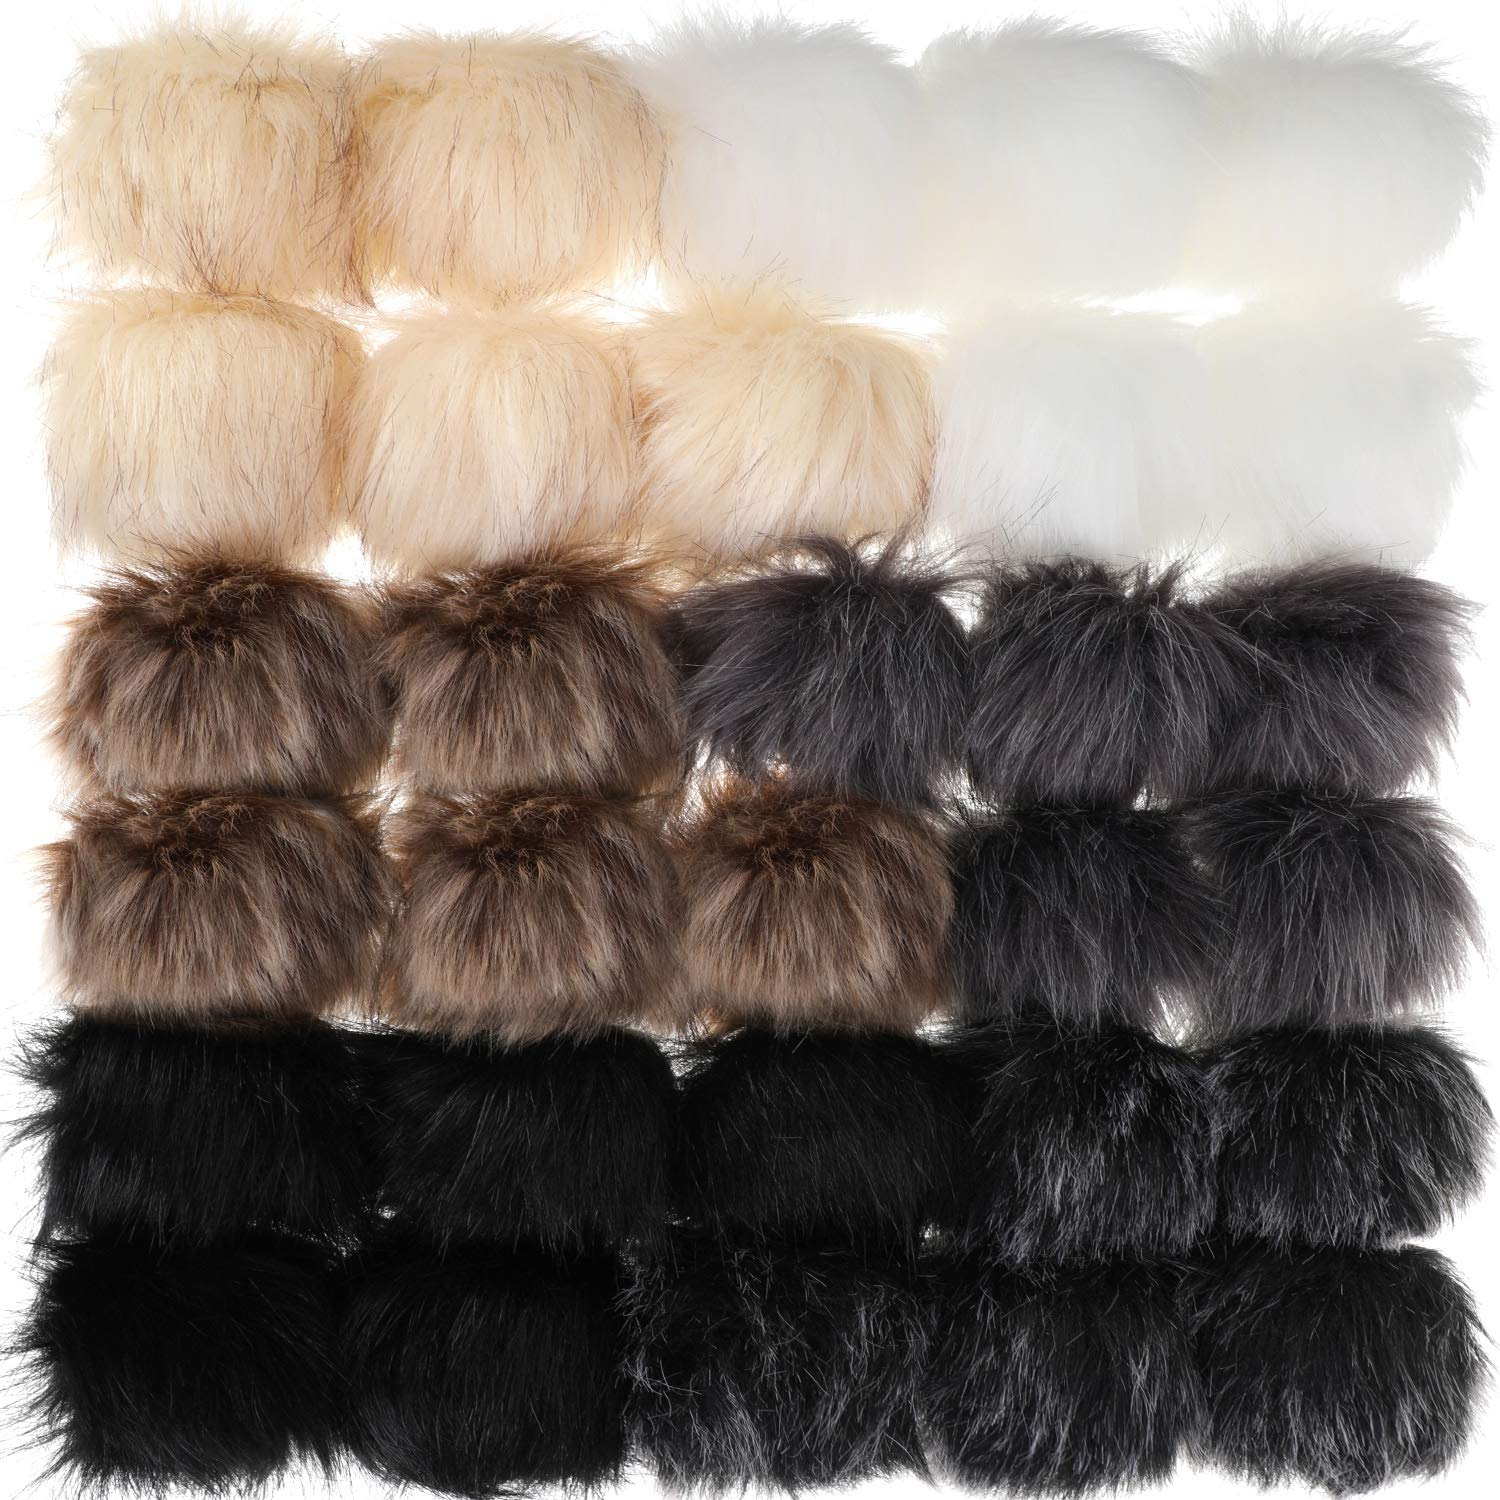 WILLBOND 30 Pieces Faux Fur Pom Pom Balls DIY Faux Fox Fur Fluffy Pom Pom with Elastic Loop for Hats Keychains Scarves Gloves Bags Accessories Farbe Set 1